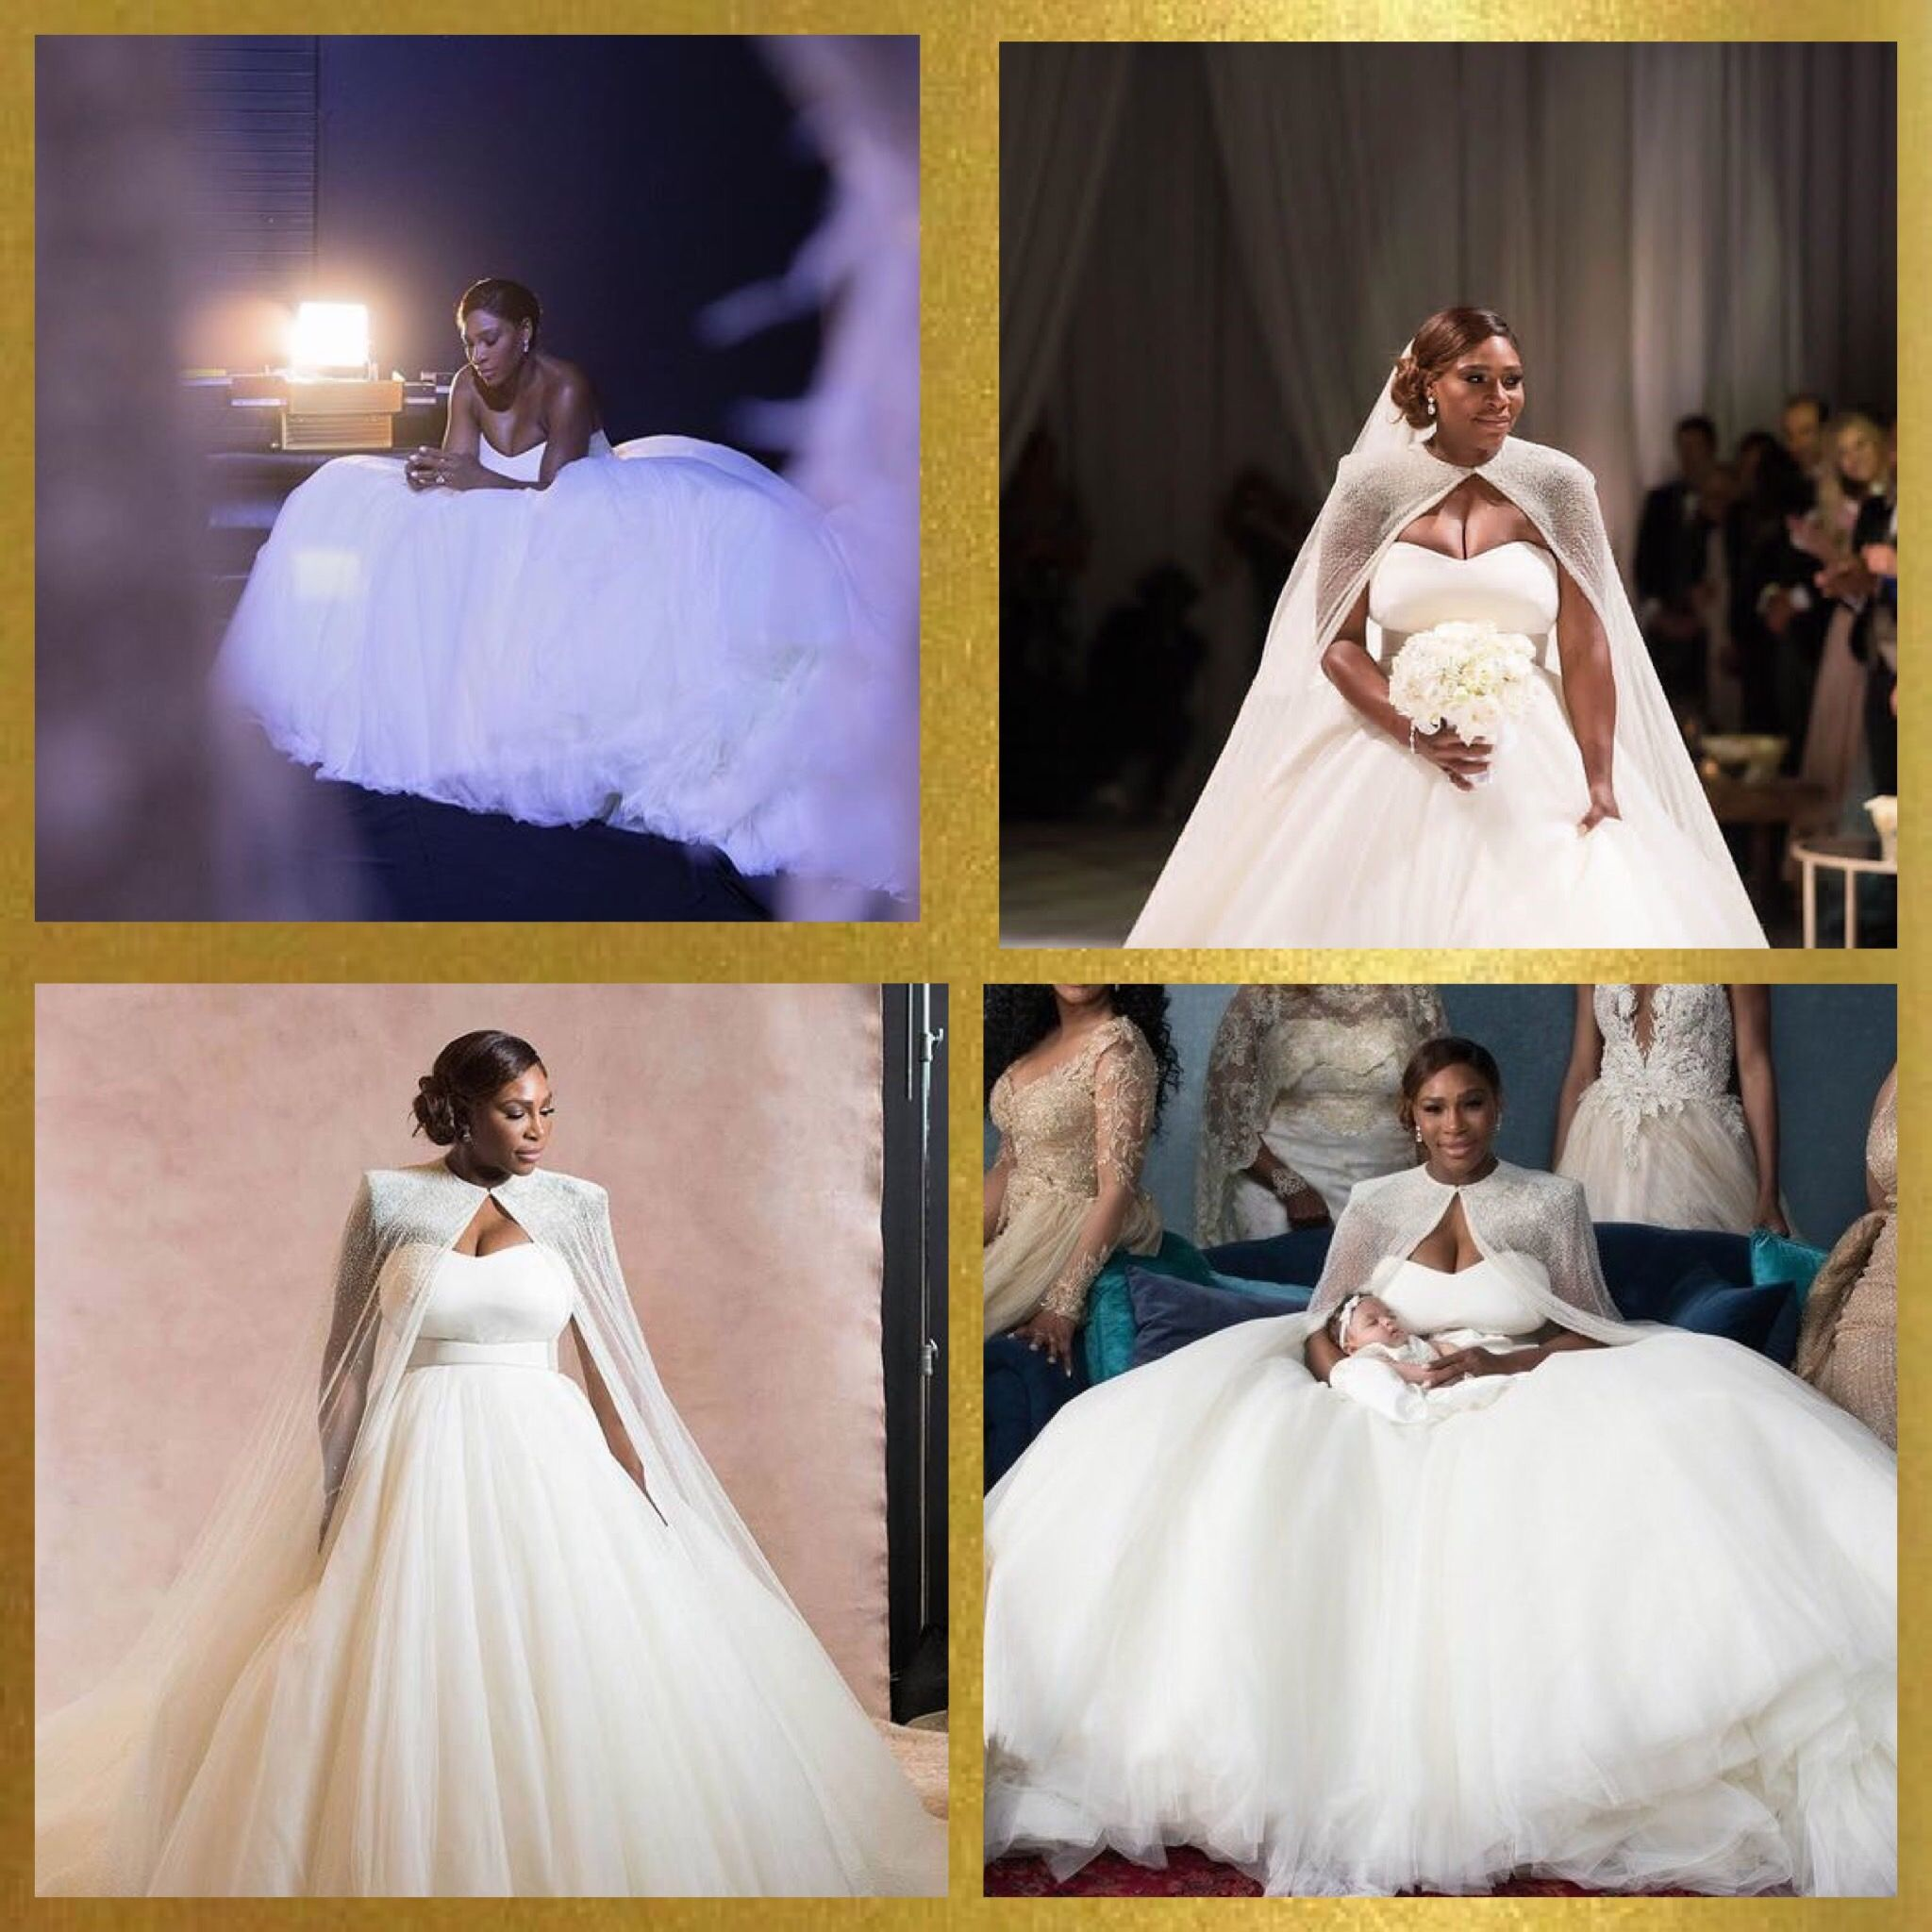 Queen Latifah Wedding Pictures.Serena Williams And Alexis Ohanian Wedding Serena